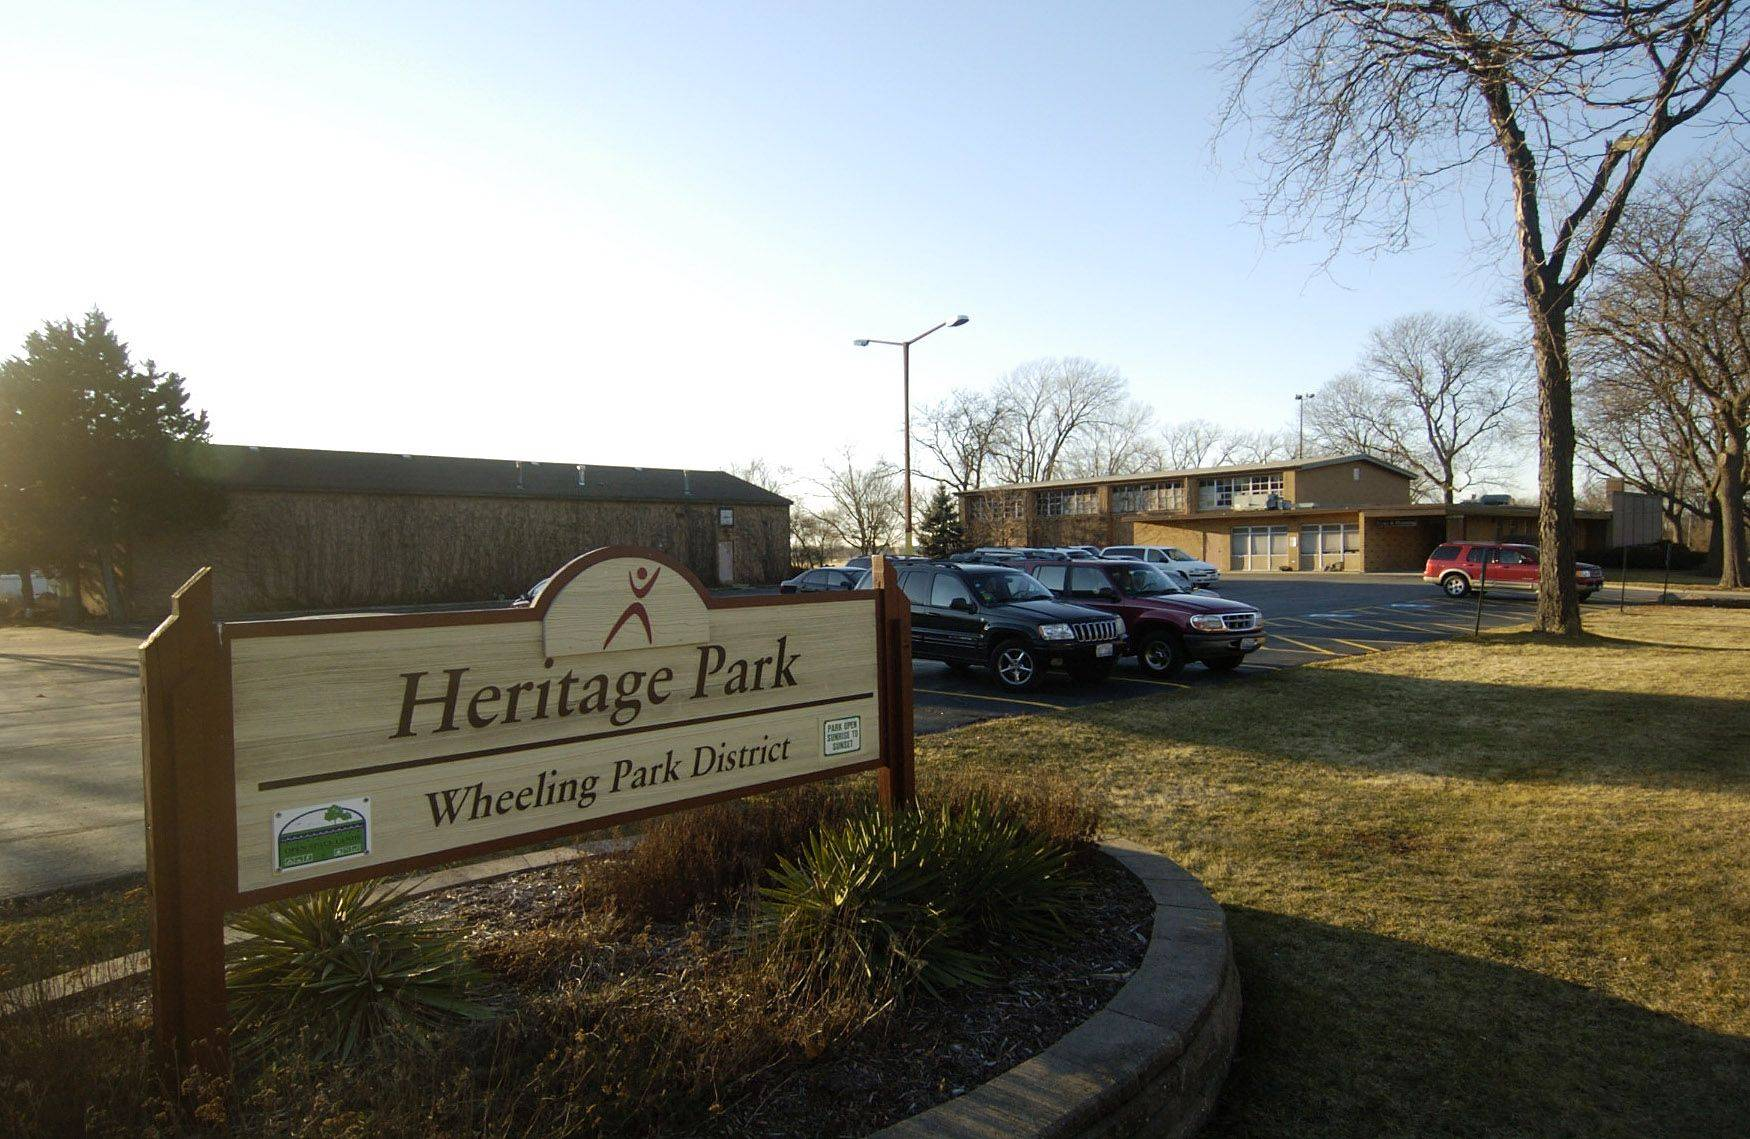 This is a view of how Heritage Park in Wheeling looks before the planned improvements.